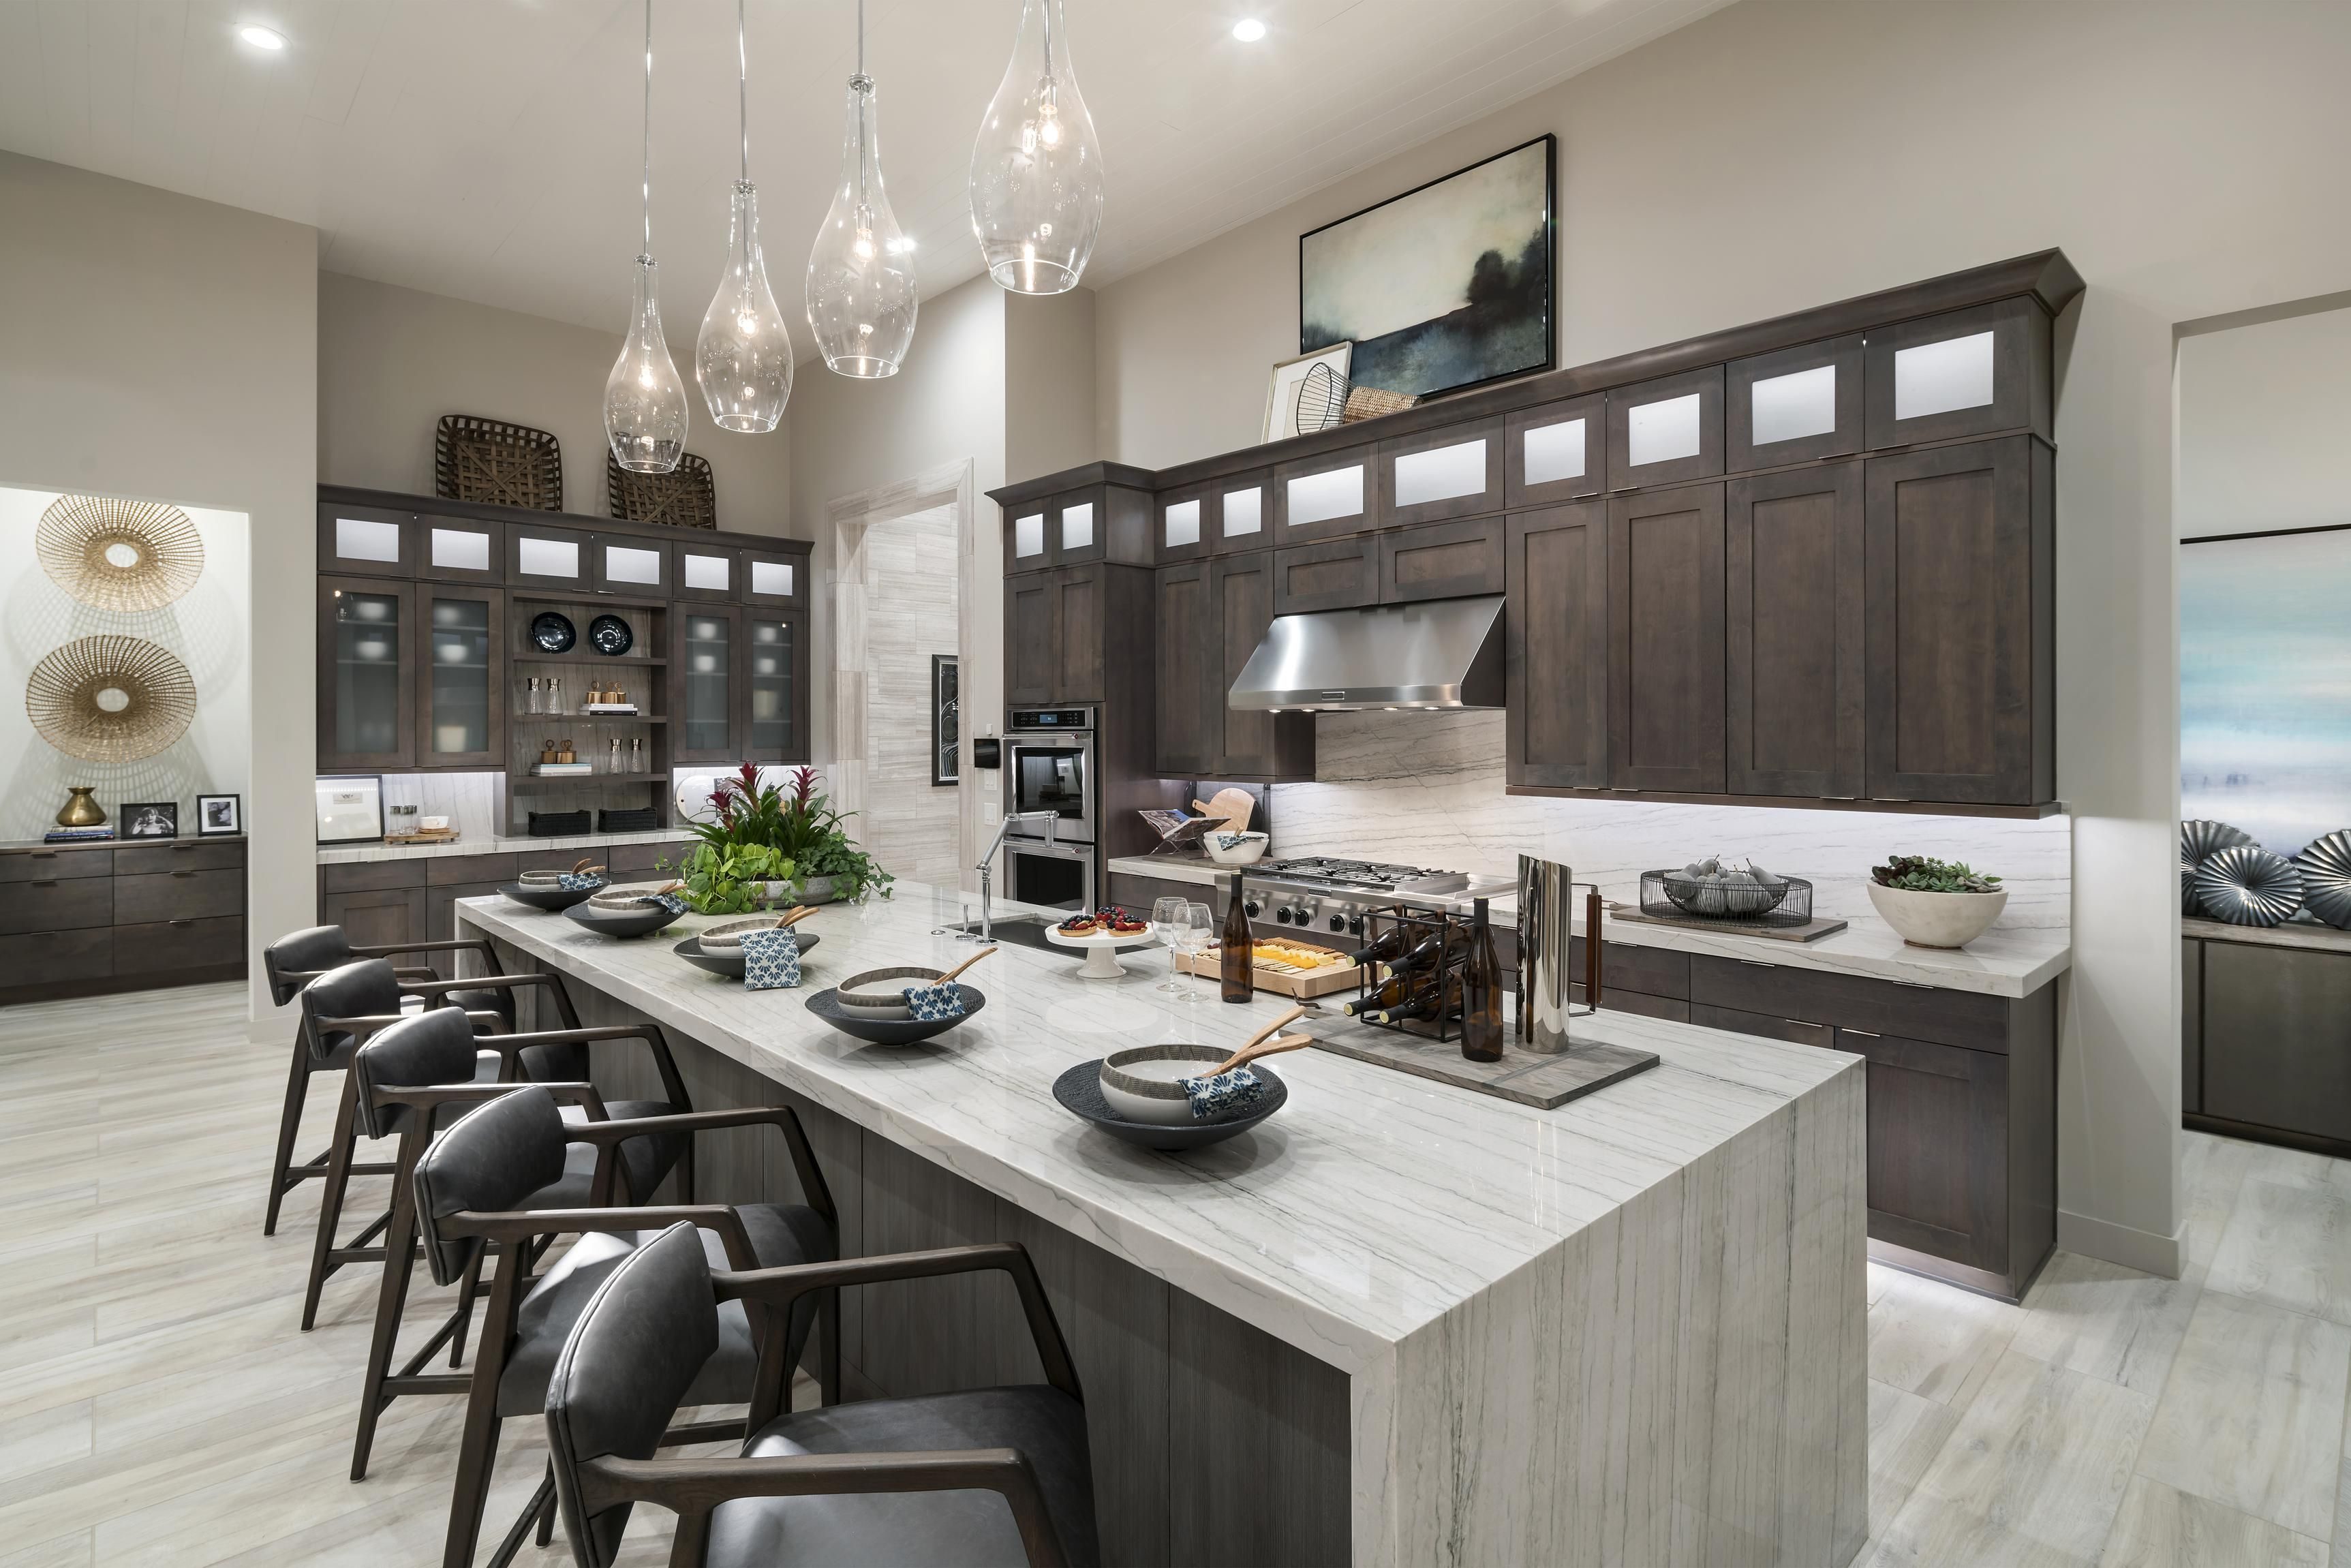 Toll Brothers at Verde River | Beautiful kitchens, Home ...